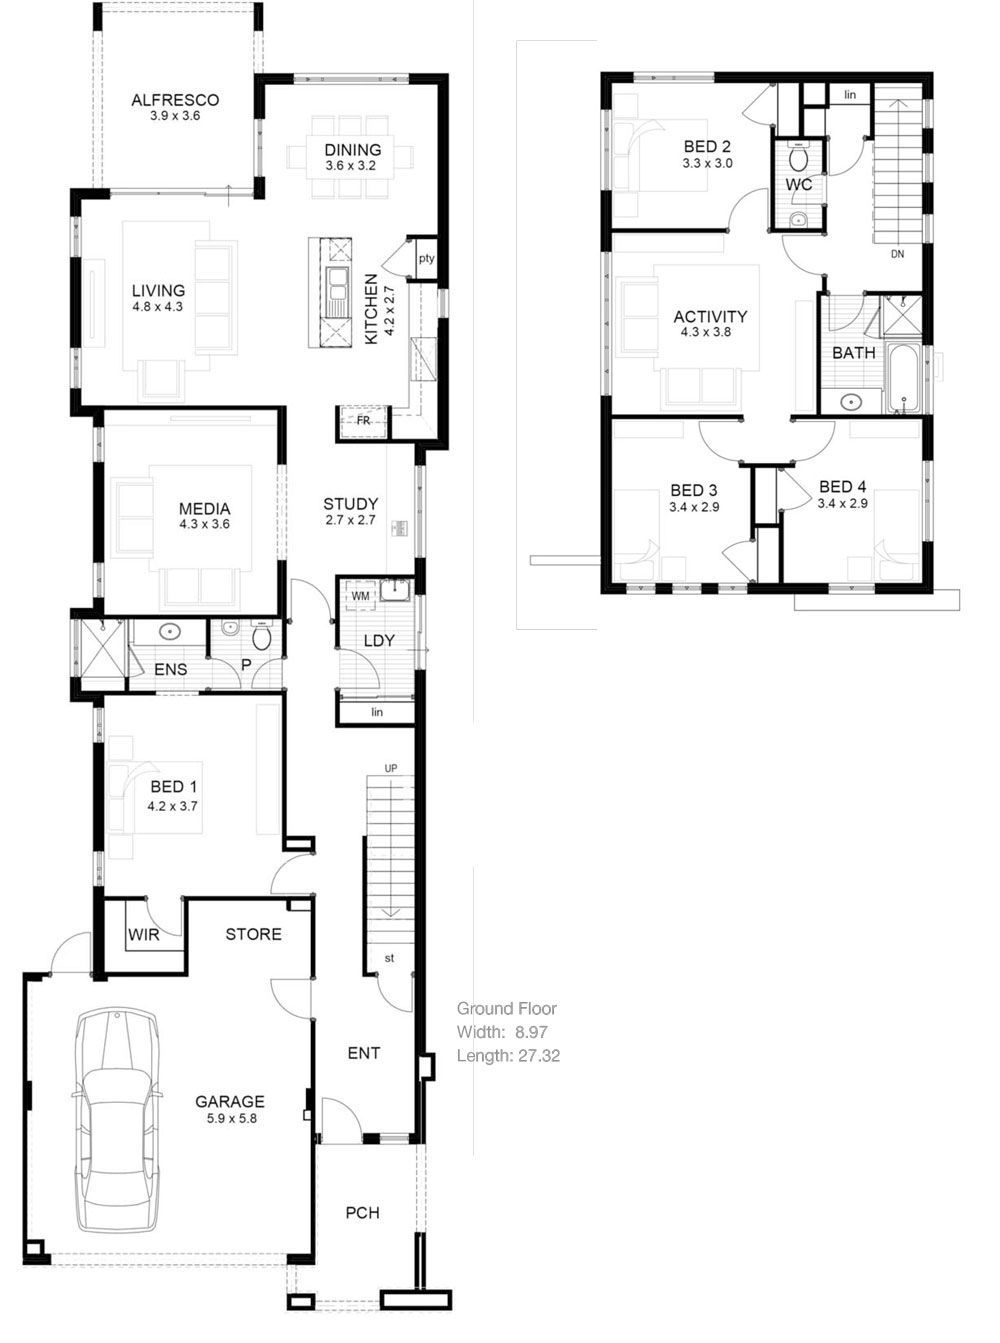 House Plans For A Narrow Lot Find The Best Images Of Modern House Decor And Architecture At Http Narrow Lot House Plans Narrow House Plans Narrow House Designs